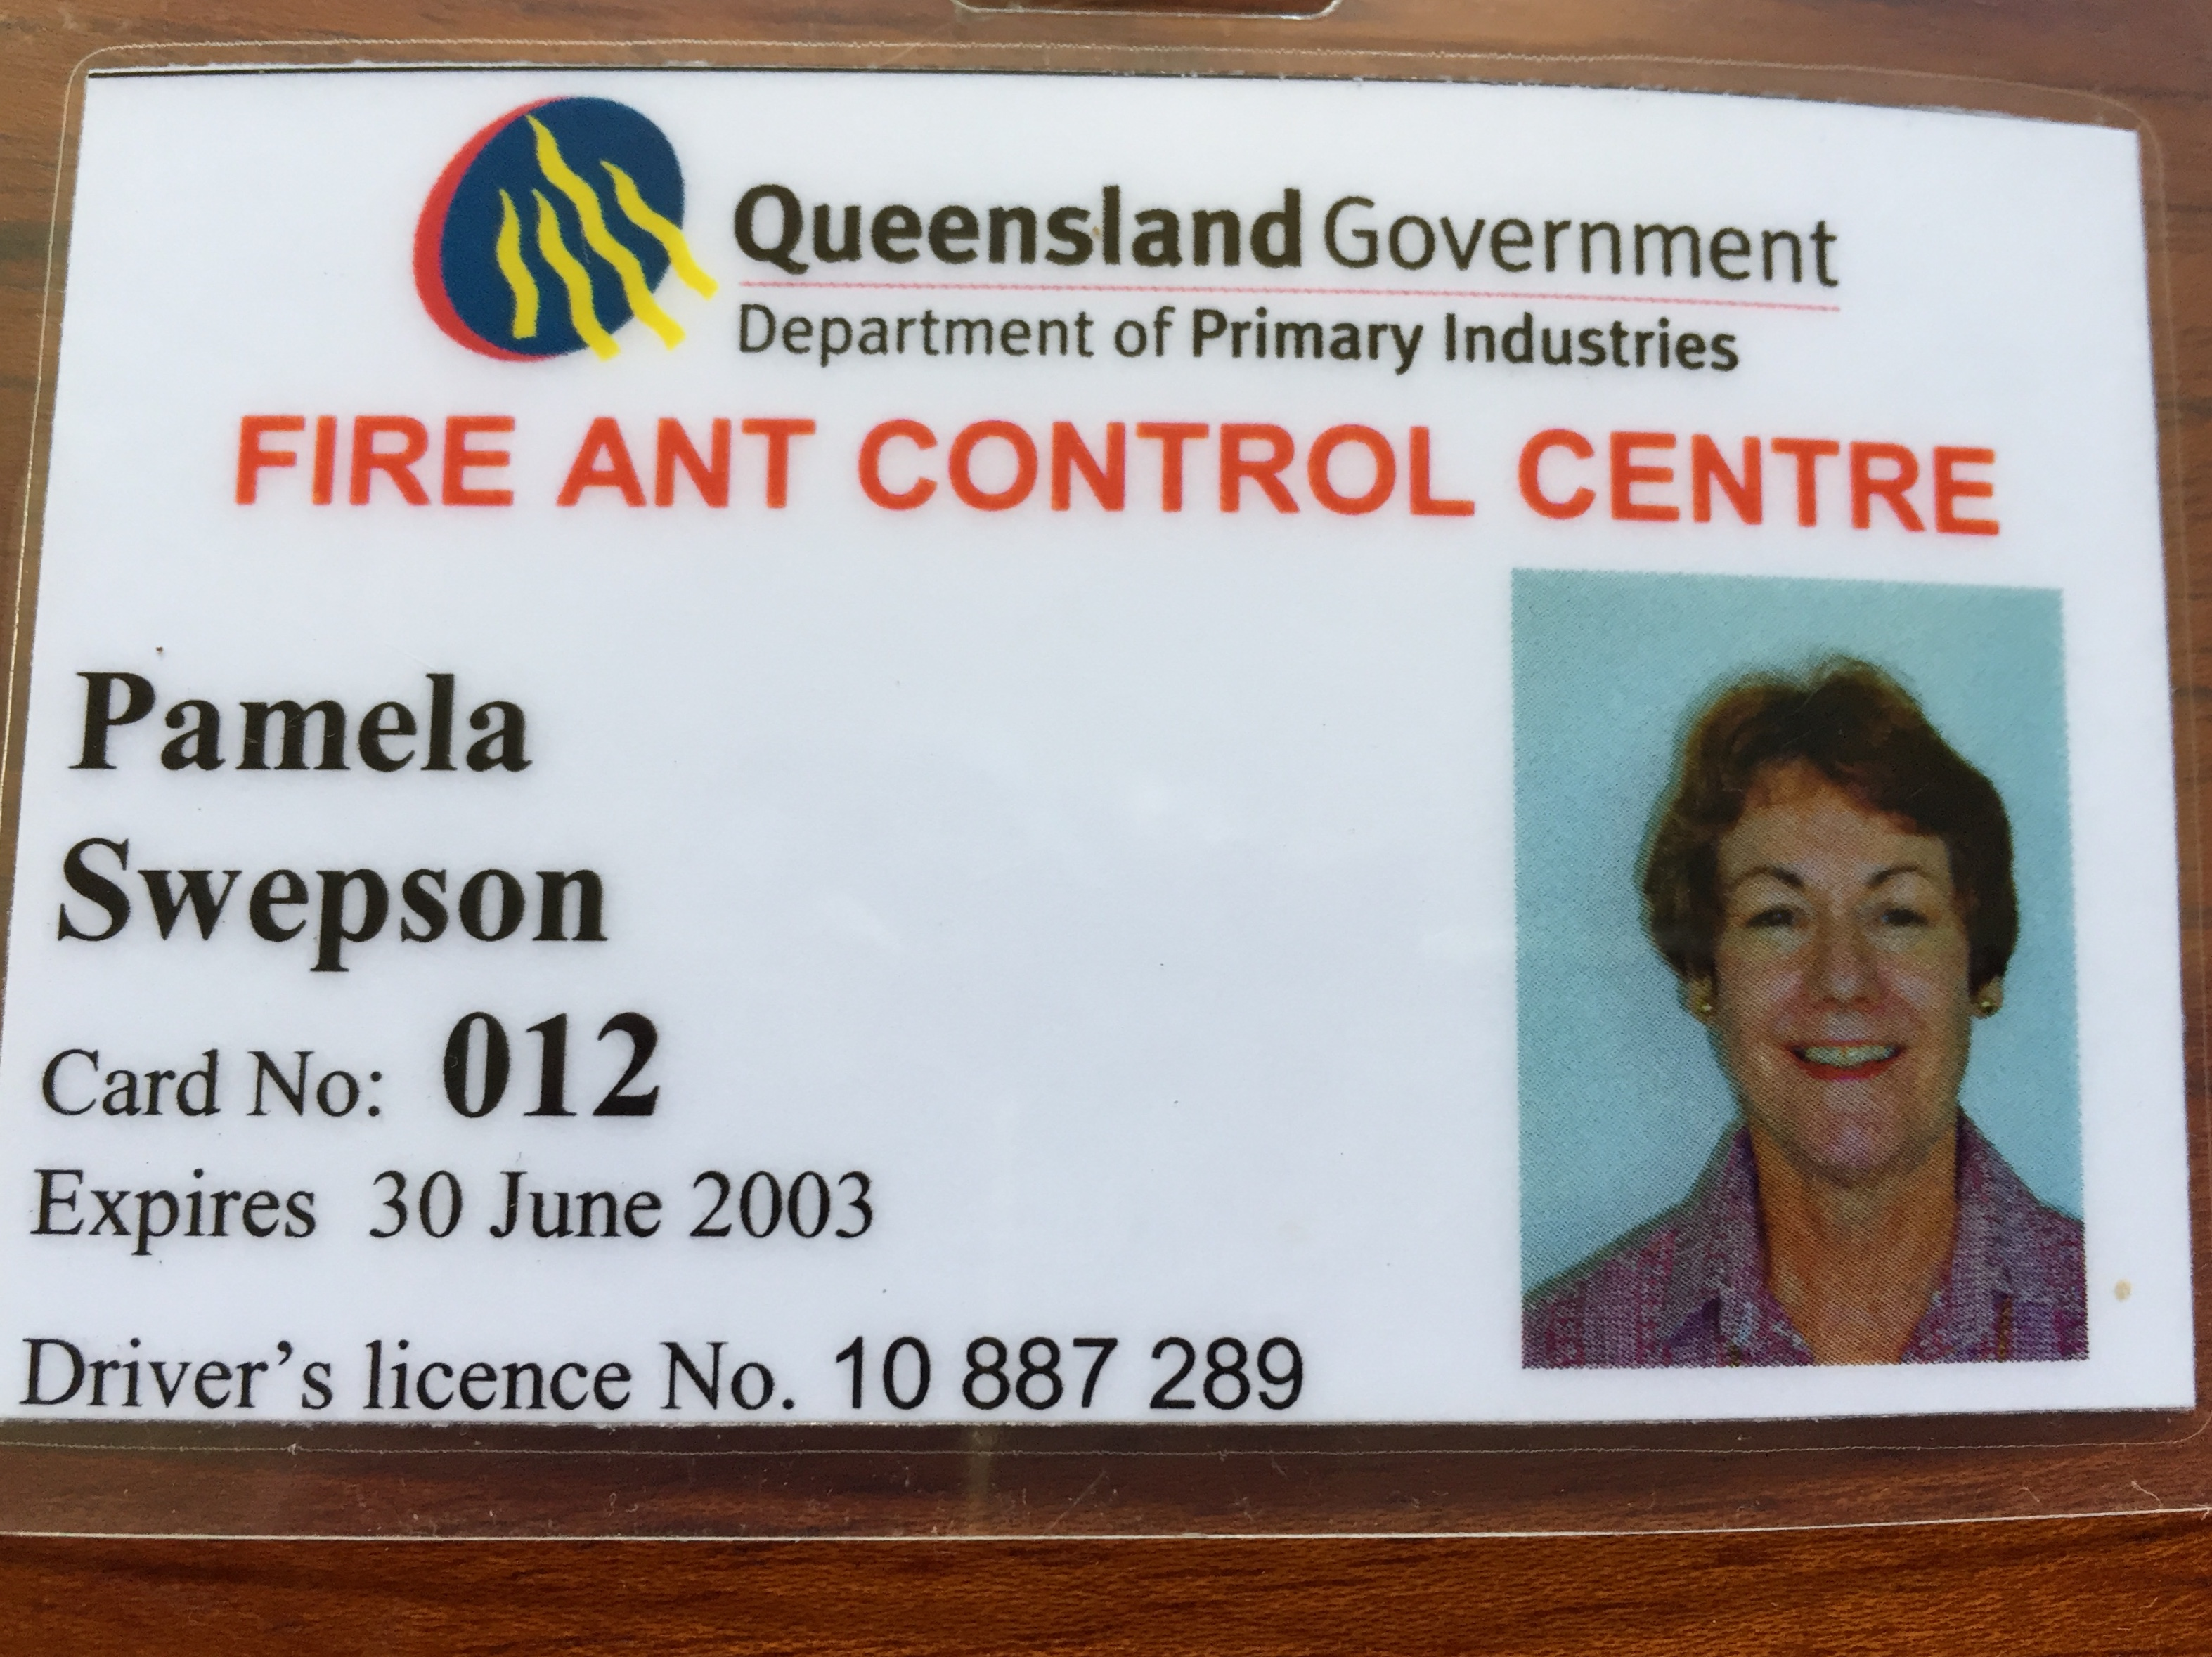 Blowing the whistle on Biosecurity Queensland's misleading fire ant program reports: they over-state success and don't report serious problems. Problems remain.